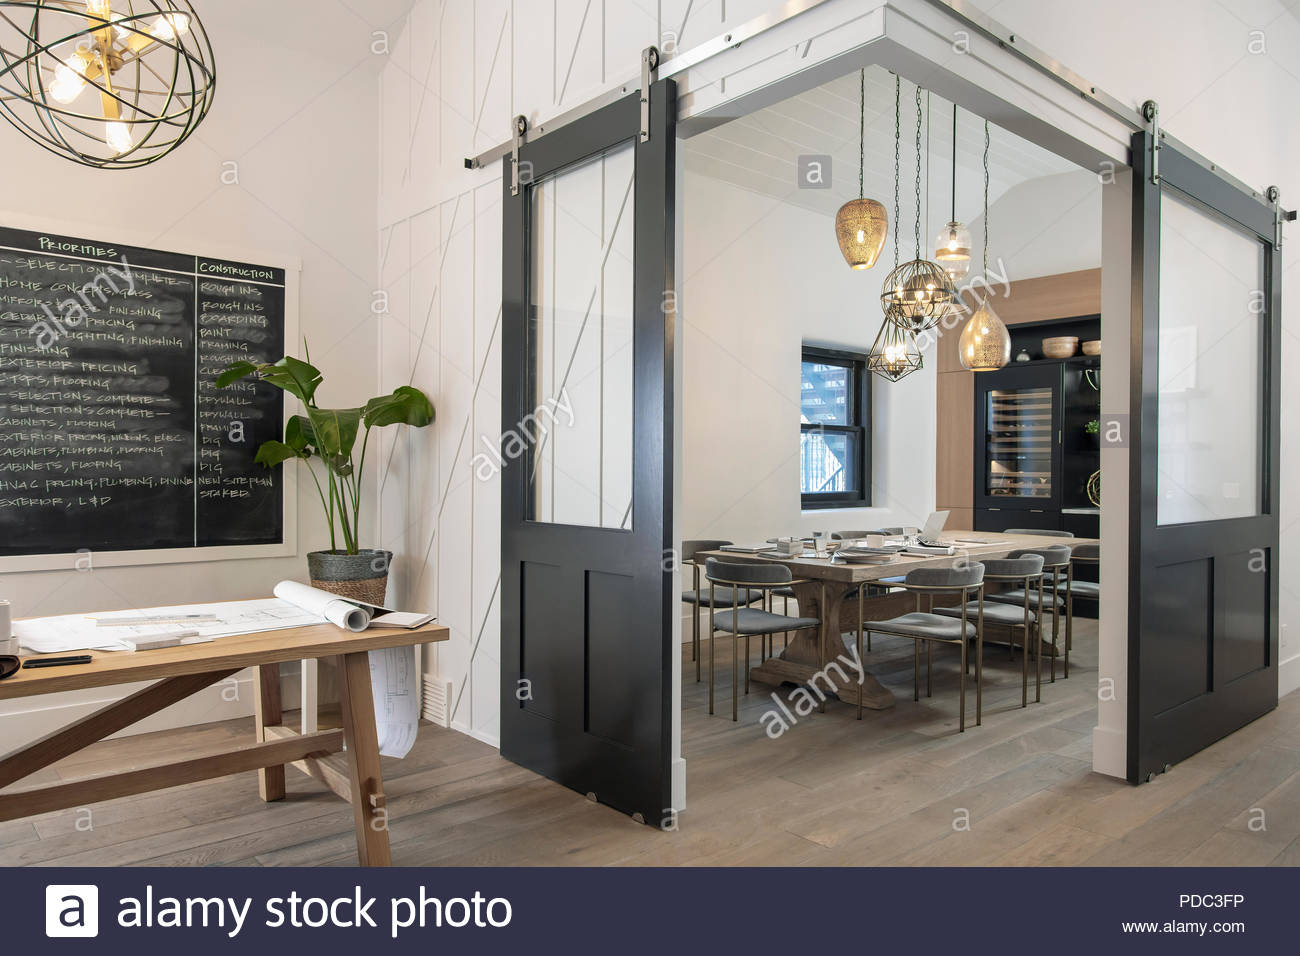 Cabinet D Architecture Creative Architect Office Workspace Stock Photo 214781162 Alamy